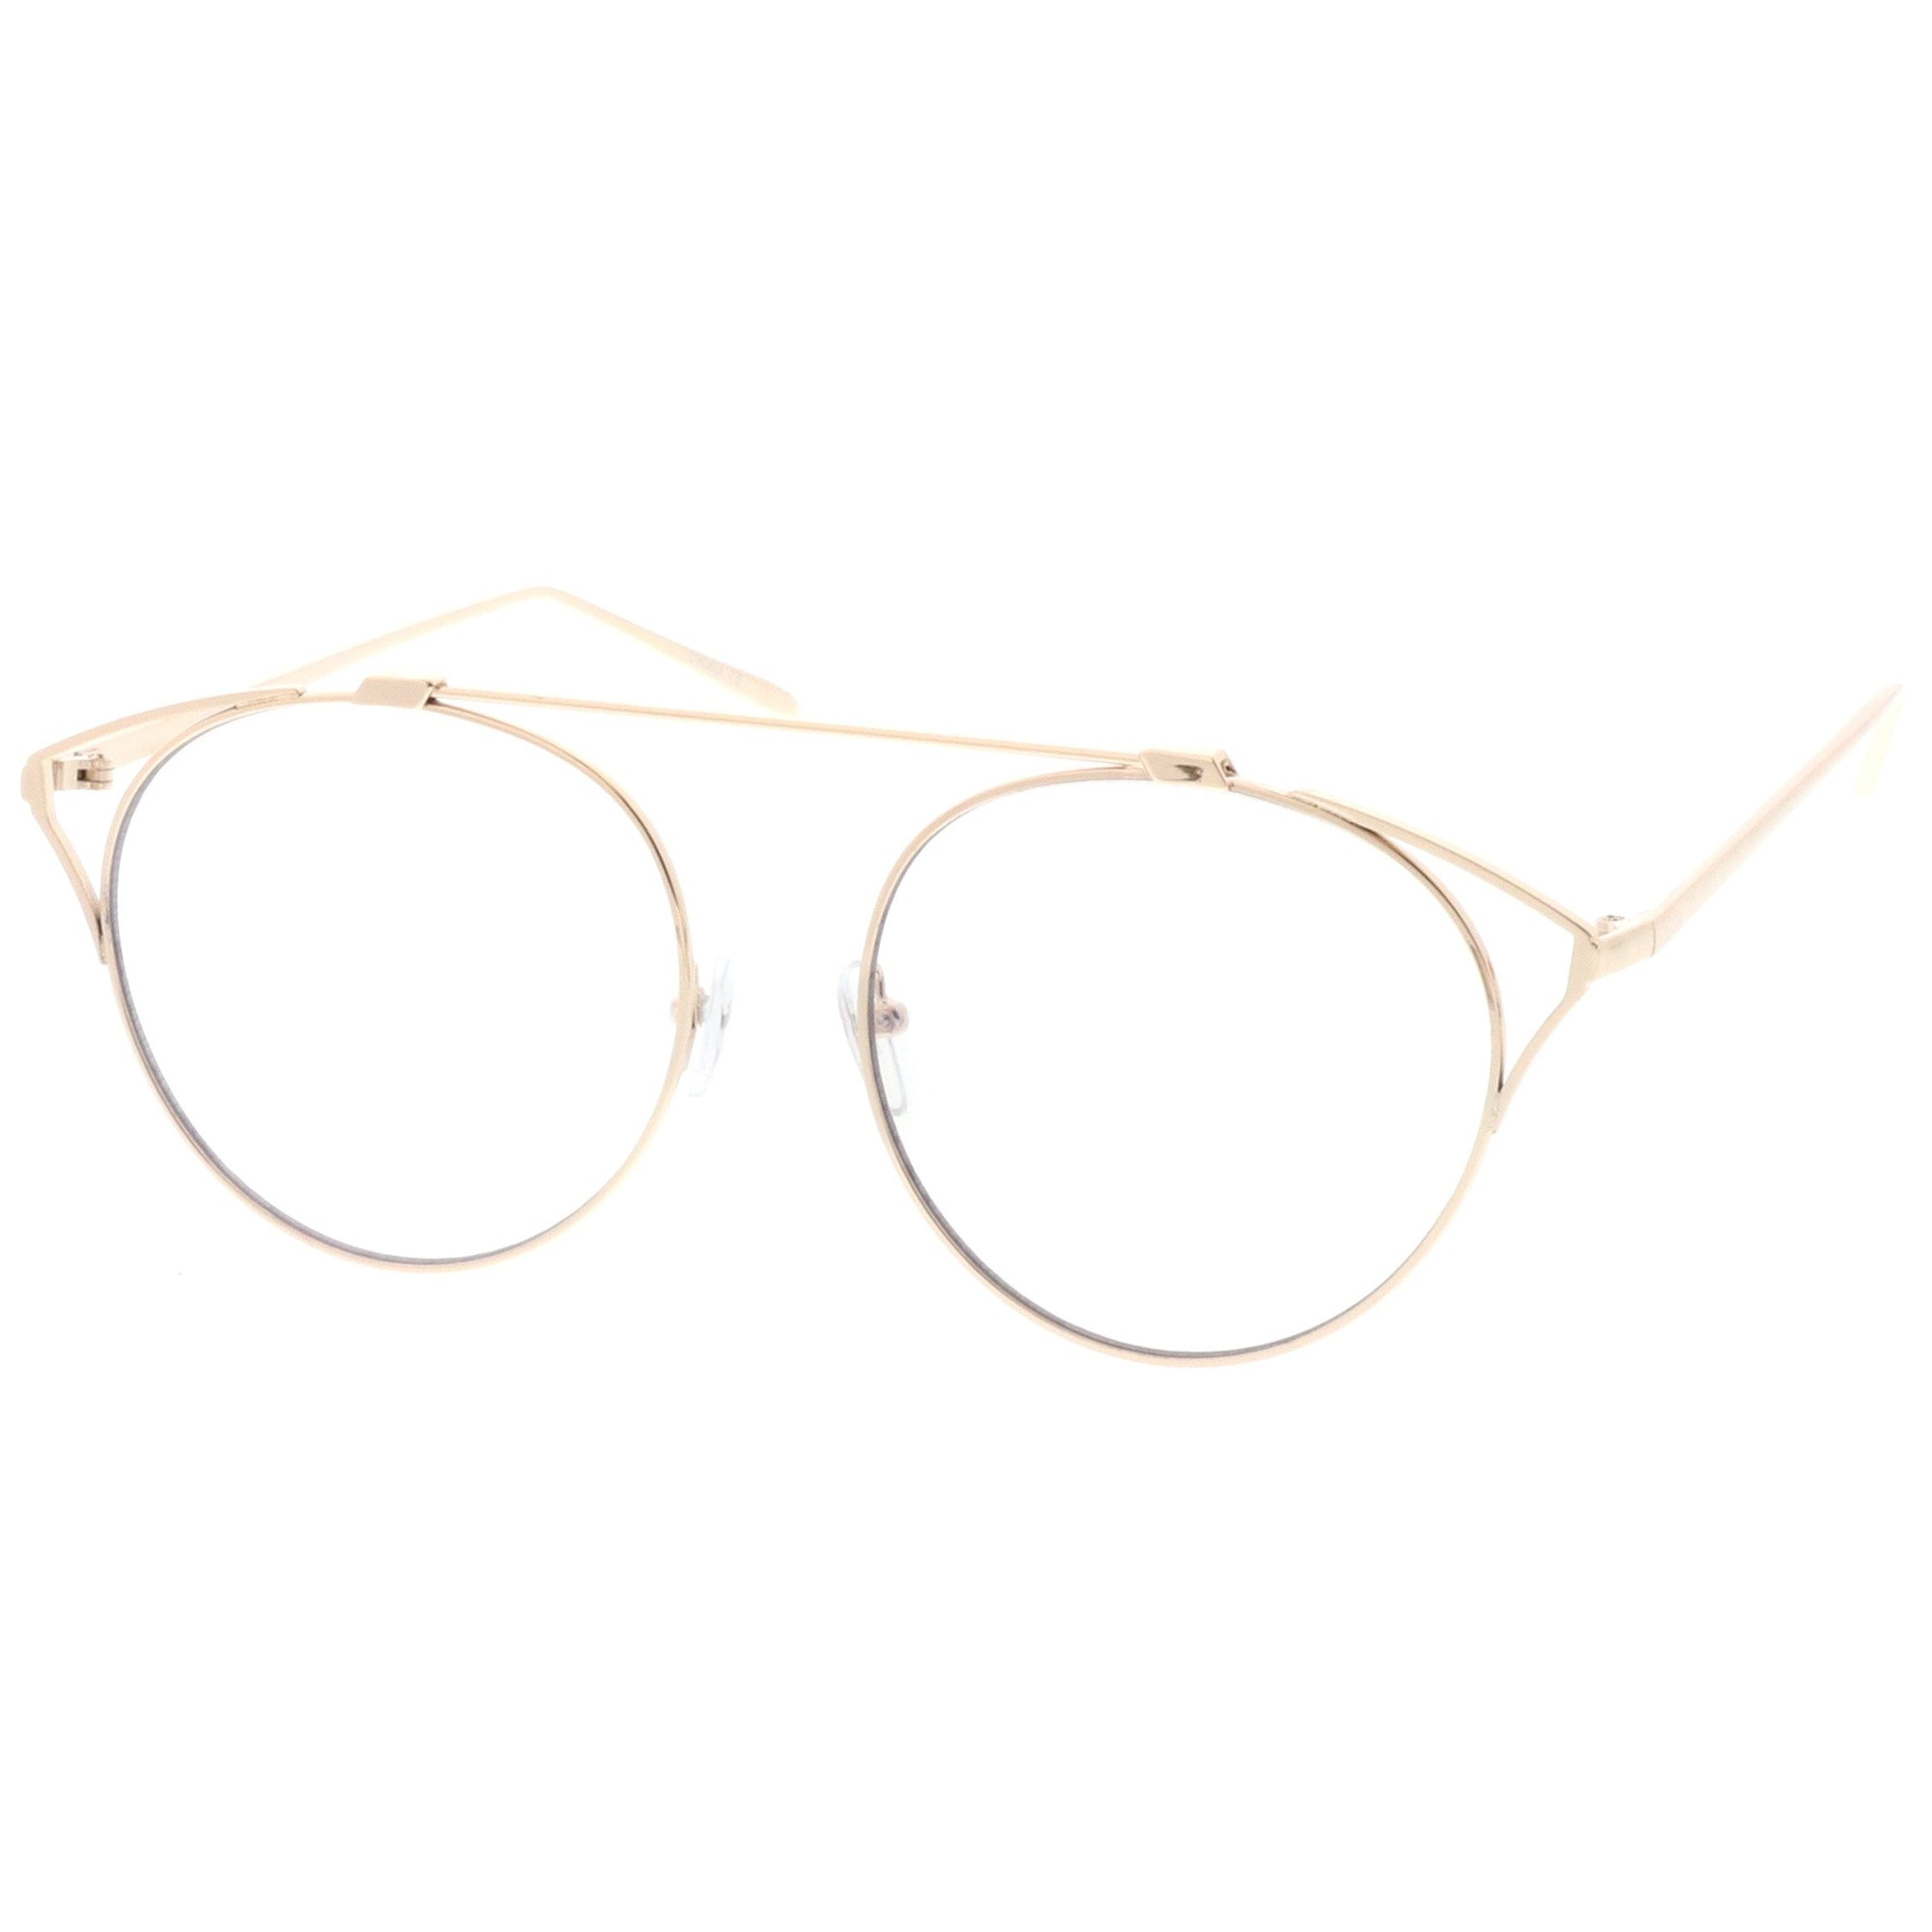 Mens or Women VINTAGE RETRO SHIELD Style Clear Lens EYE GLASSES Gold Metal Frame